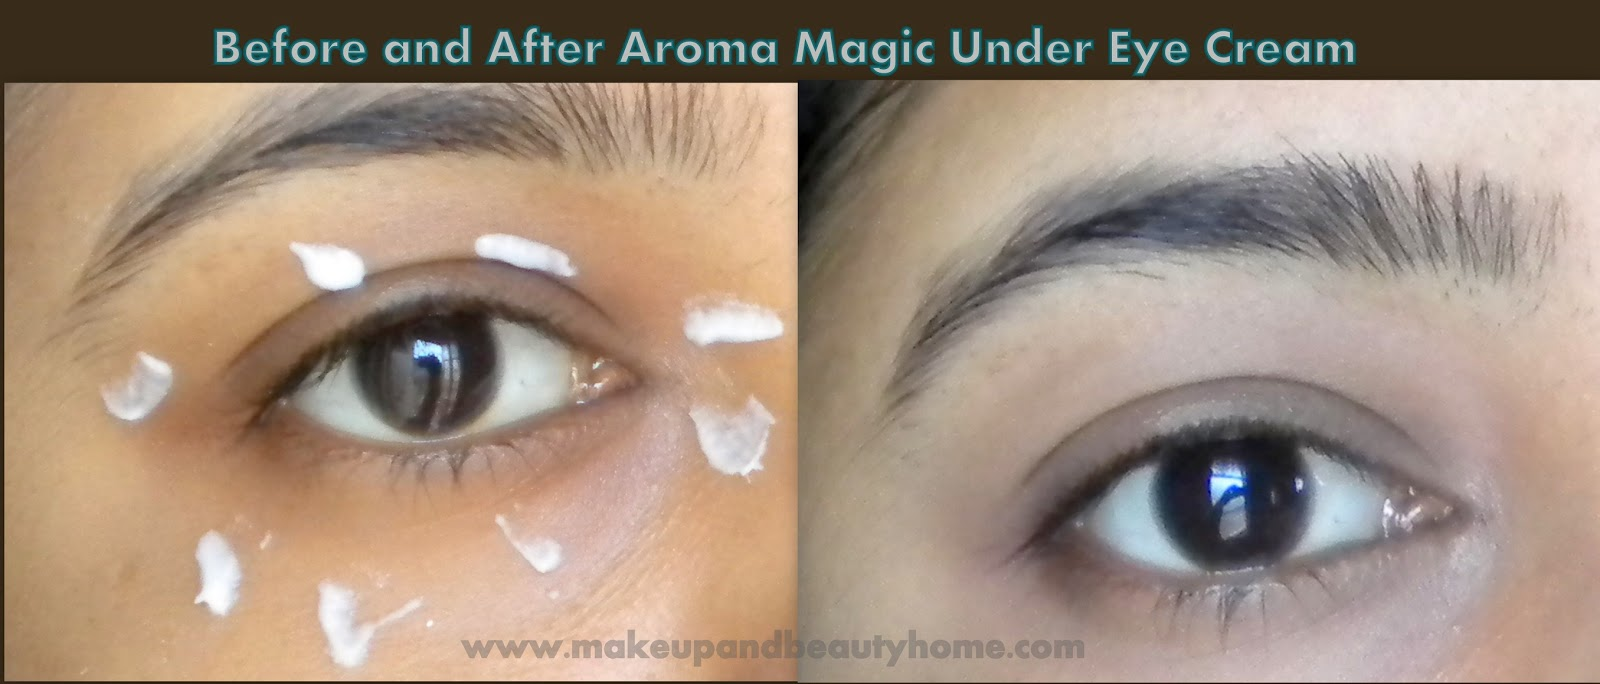 aroma magic almond under eye cream review mabh blog